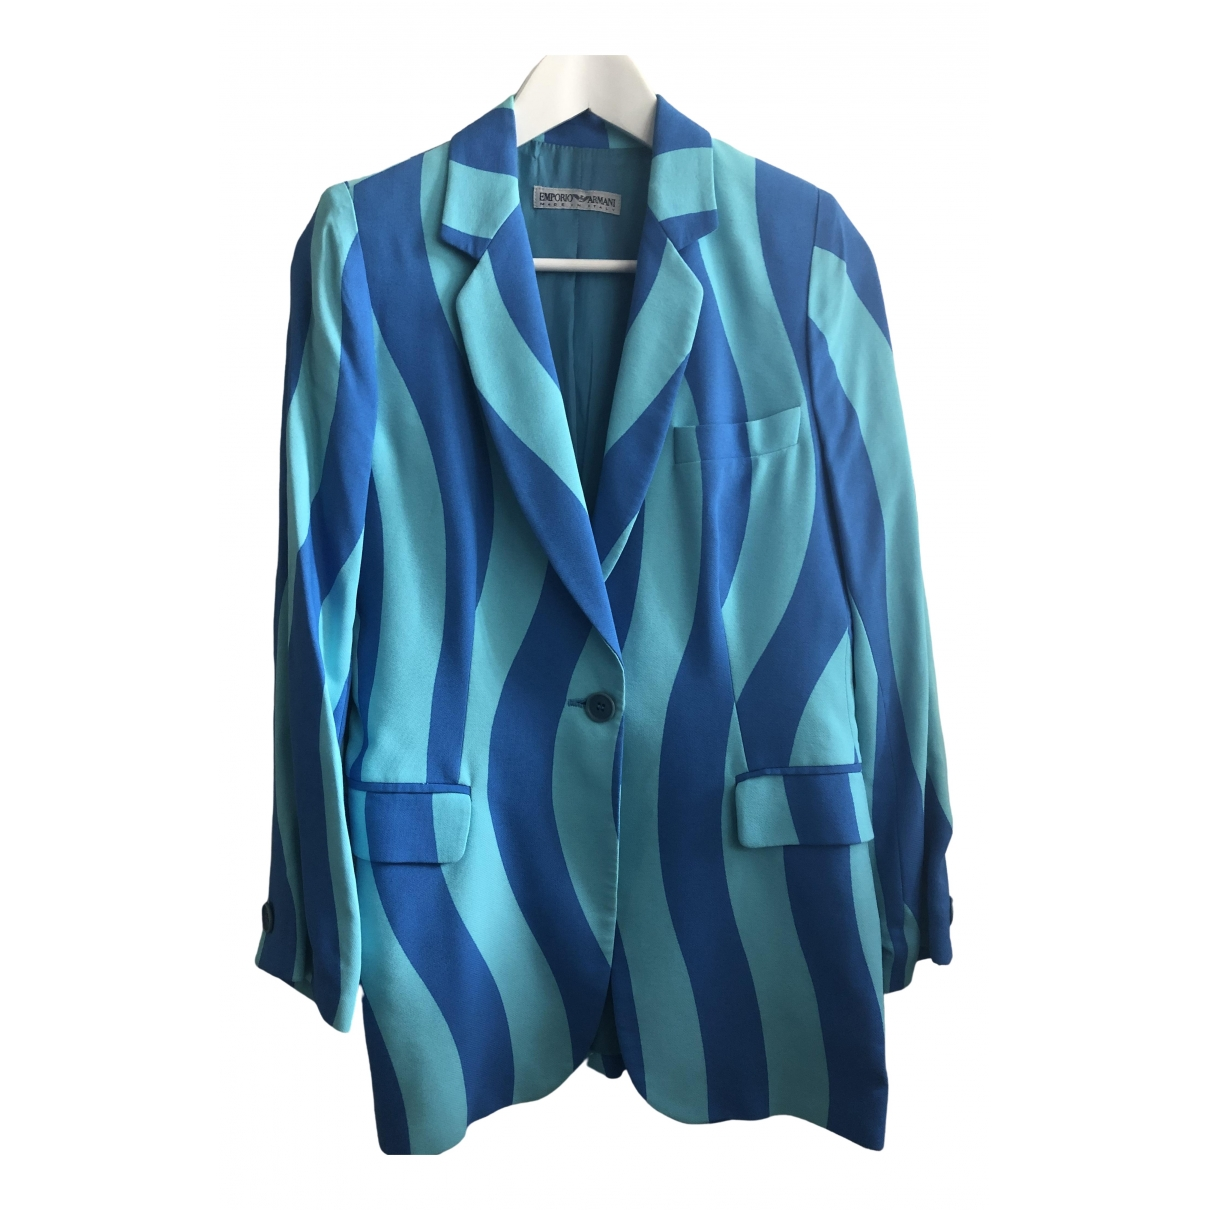 Emporio Armani \N Blue jacket for Women 40 IT